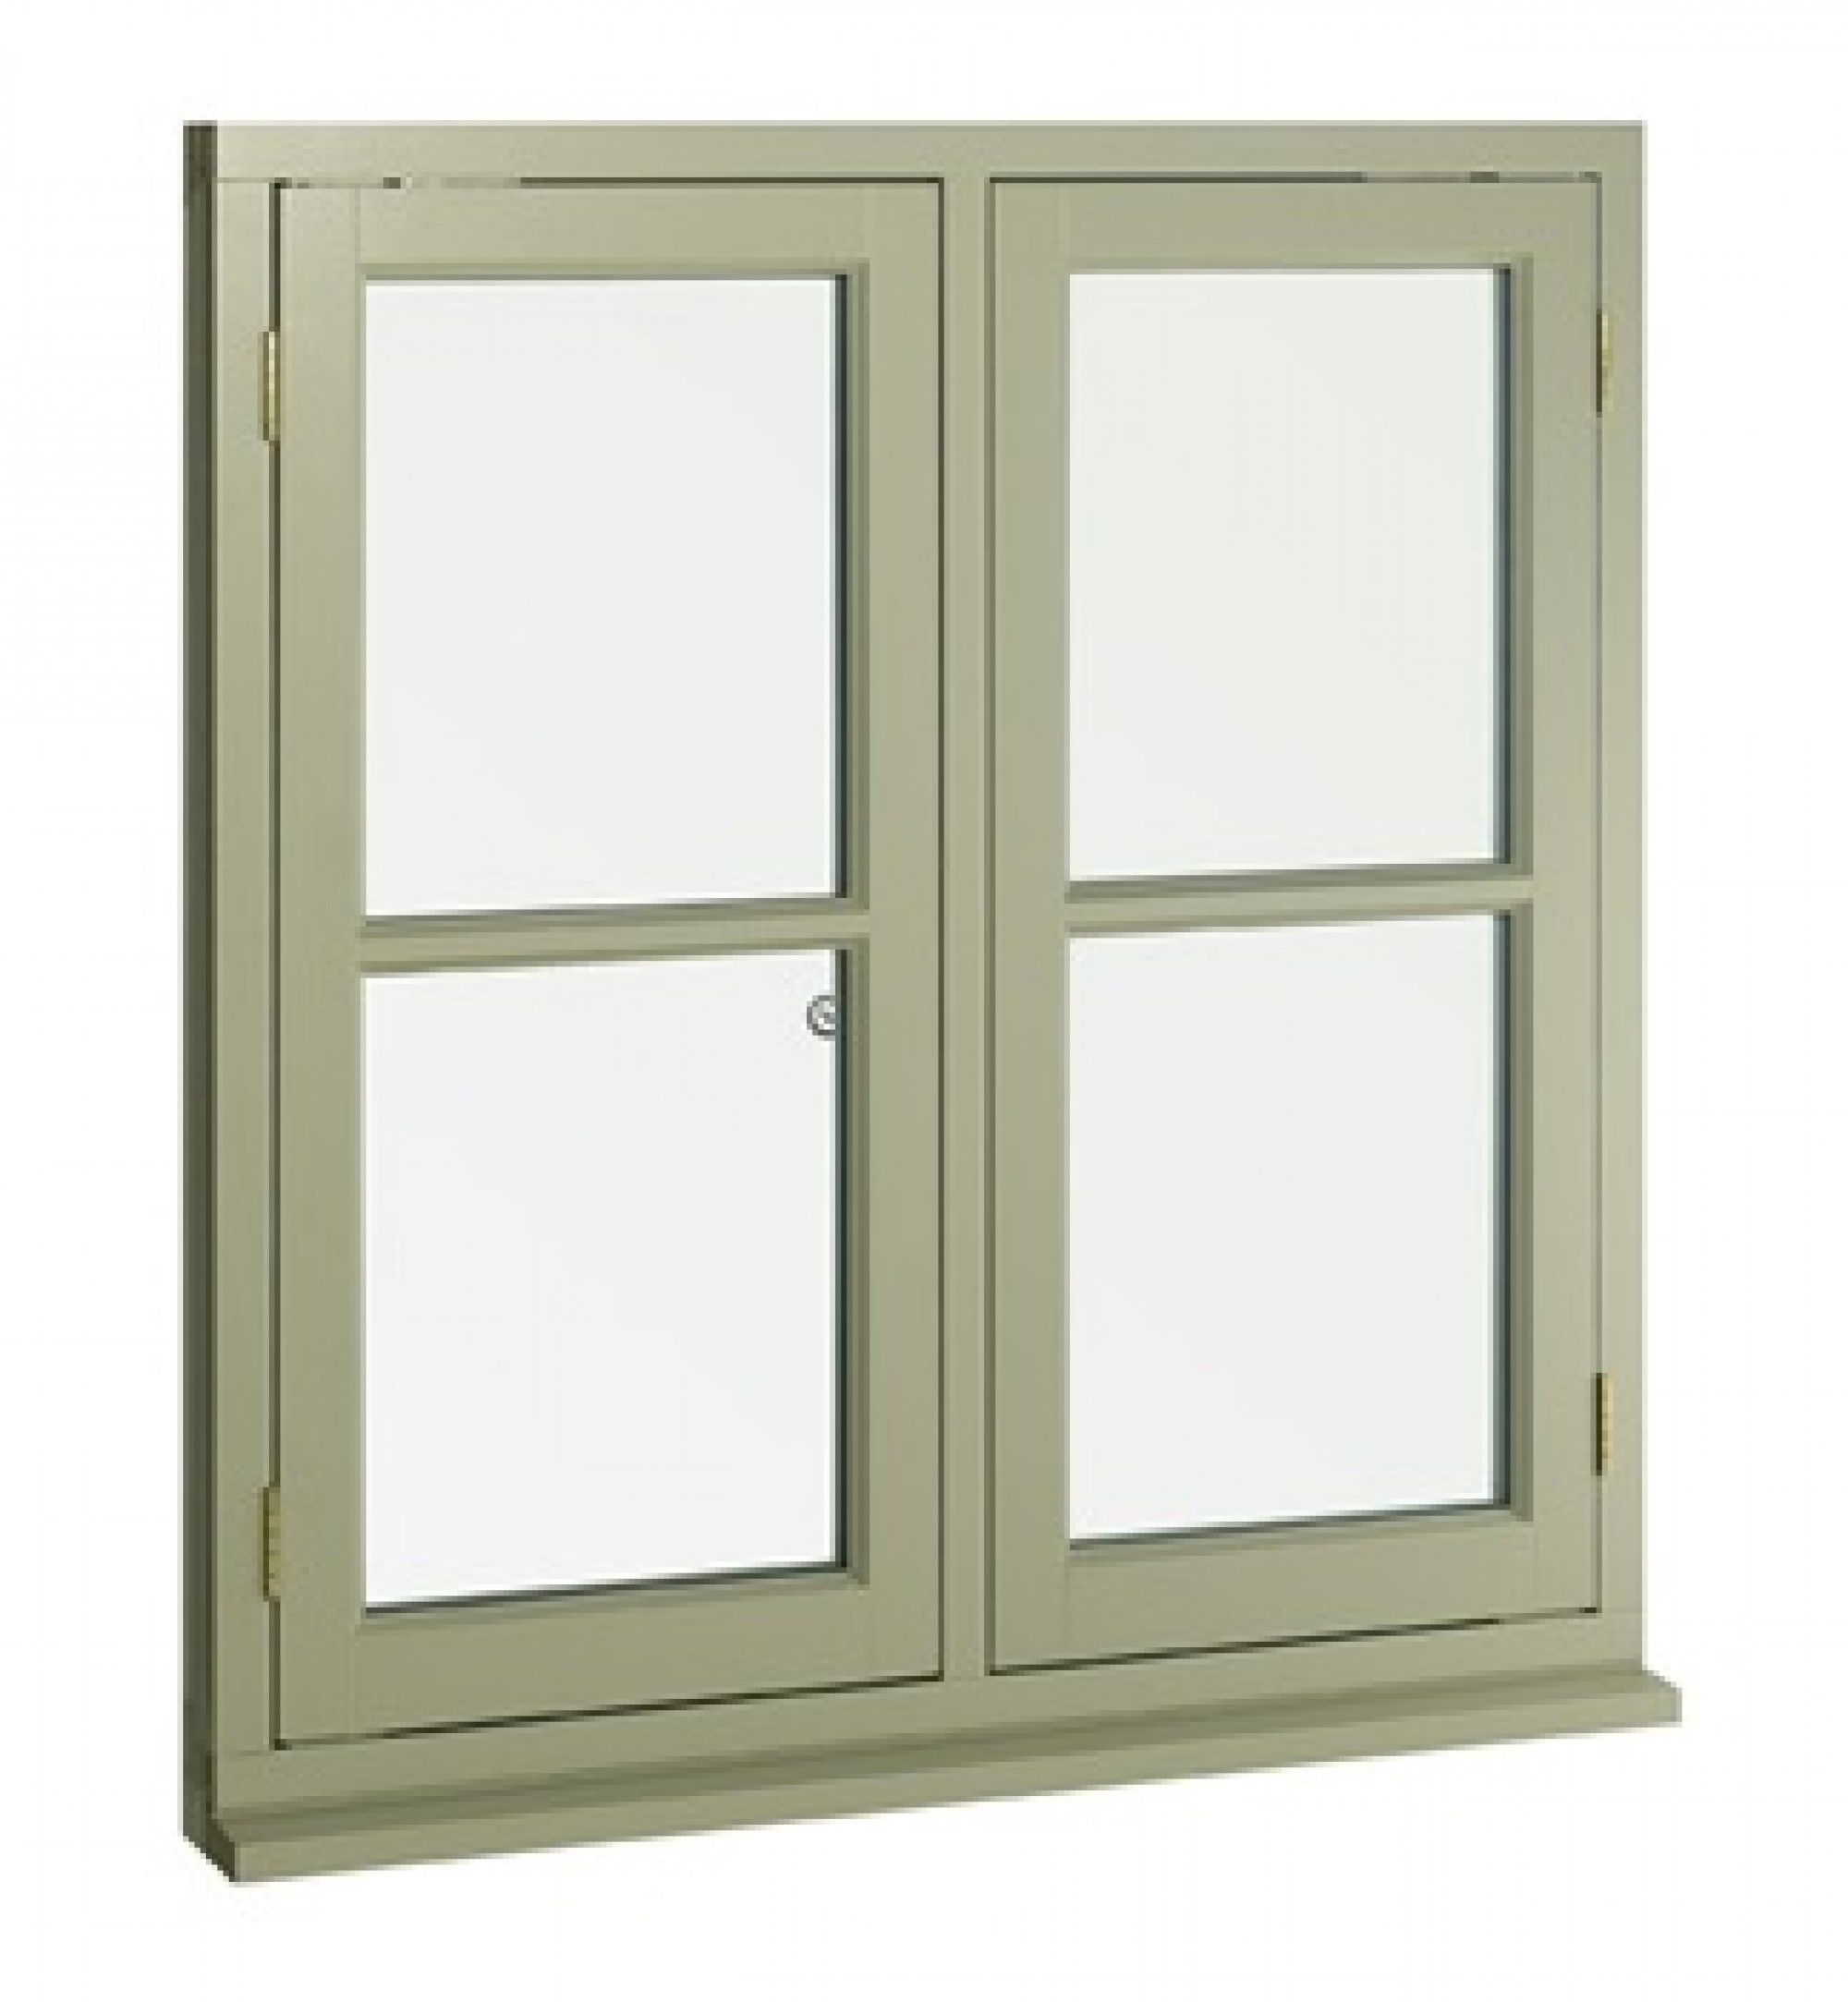 Conventional traditional flush casement windows new for Double casement windows